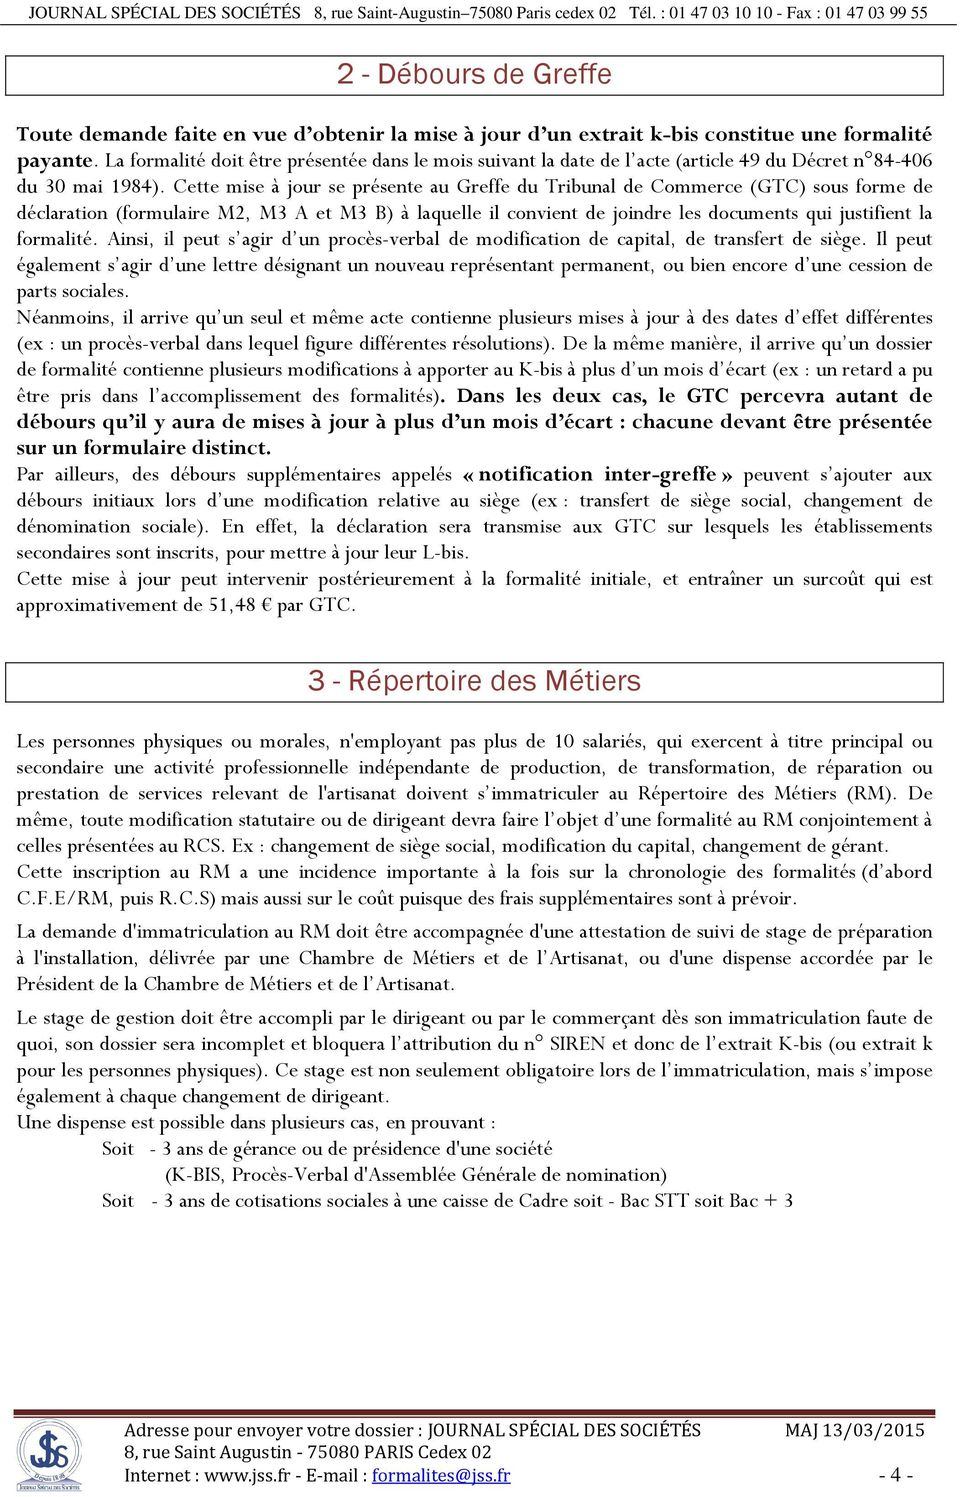 Guide des formalit s l gales pdf for Extrait immatriculation chambre des metiers